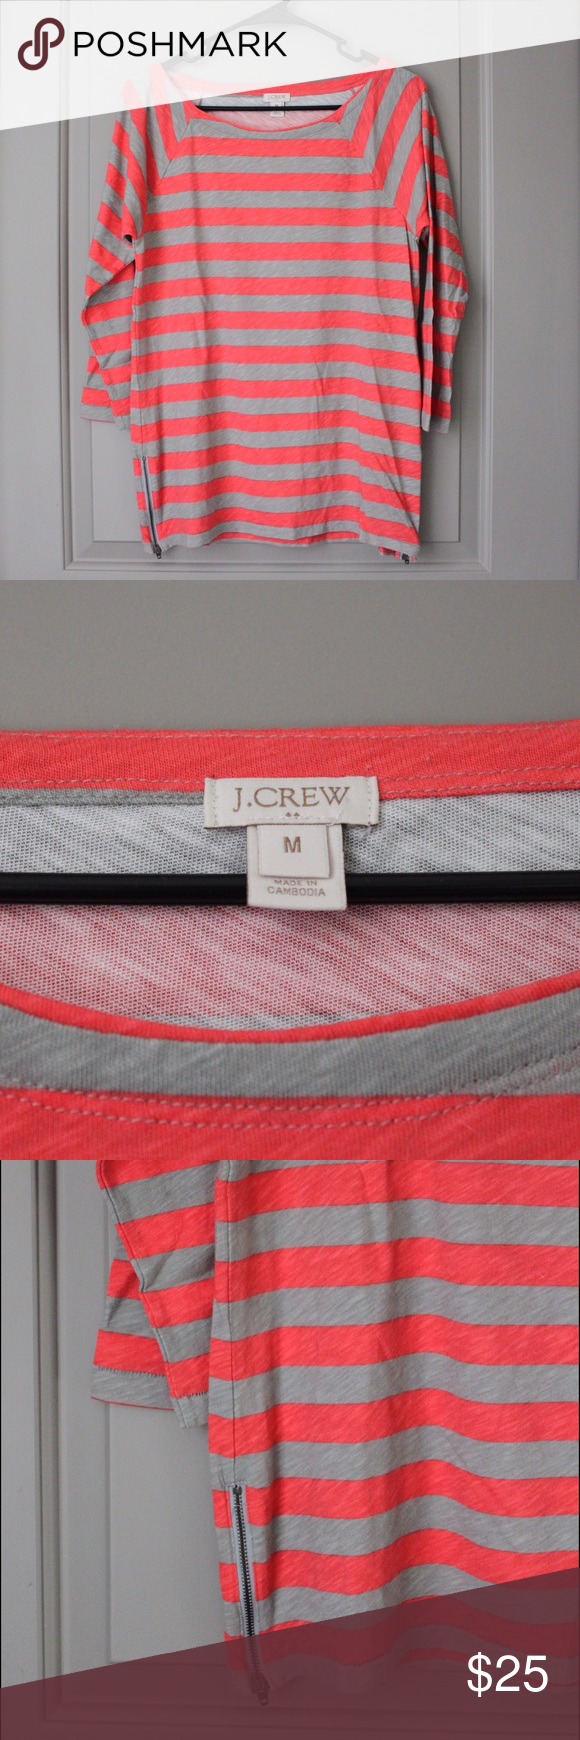 NWOT J. Crew 3/4 sleeve top Only worn once! Has zipper detail on both sides of the shirt. J. Crew Tops Tees - Long Sleeve